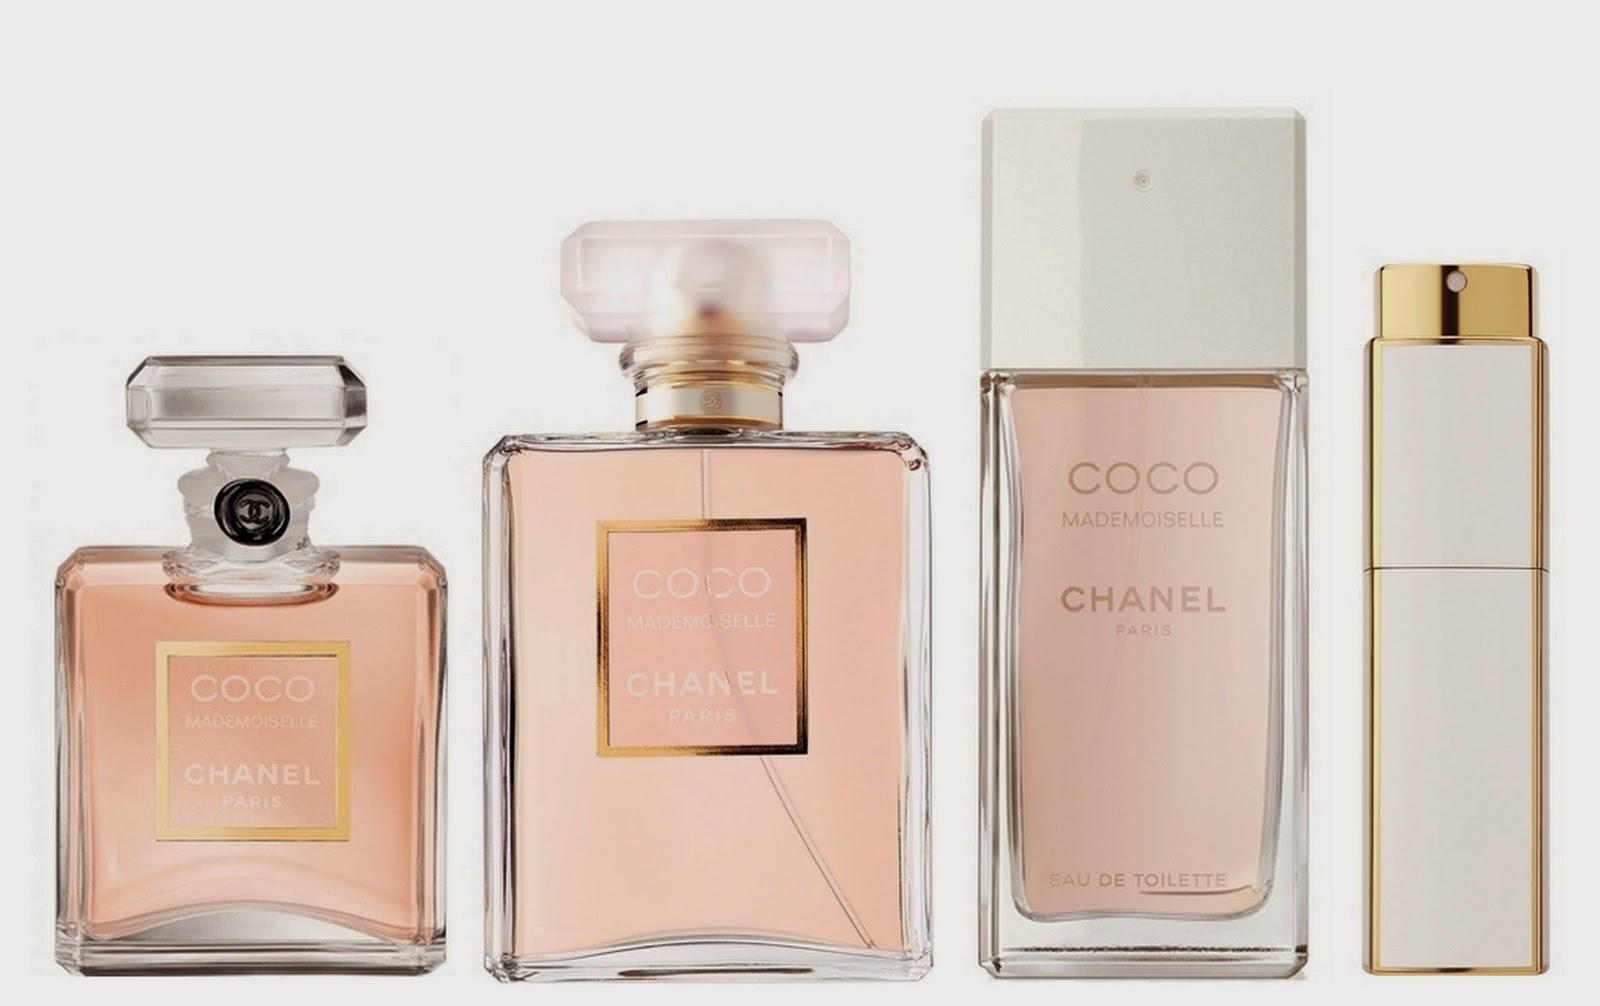 chanel perfume bottles coco mademoiselle by chanel c2001. Black Bedroom Furniture Sets. Home Design Ideas